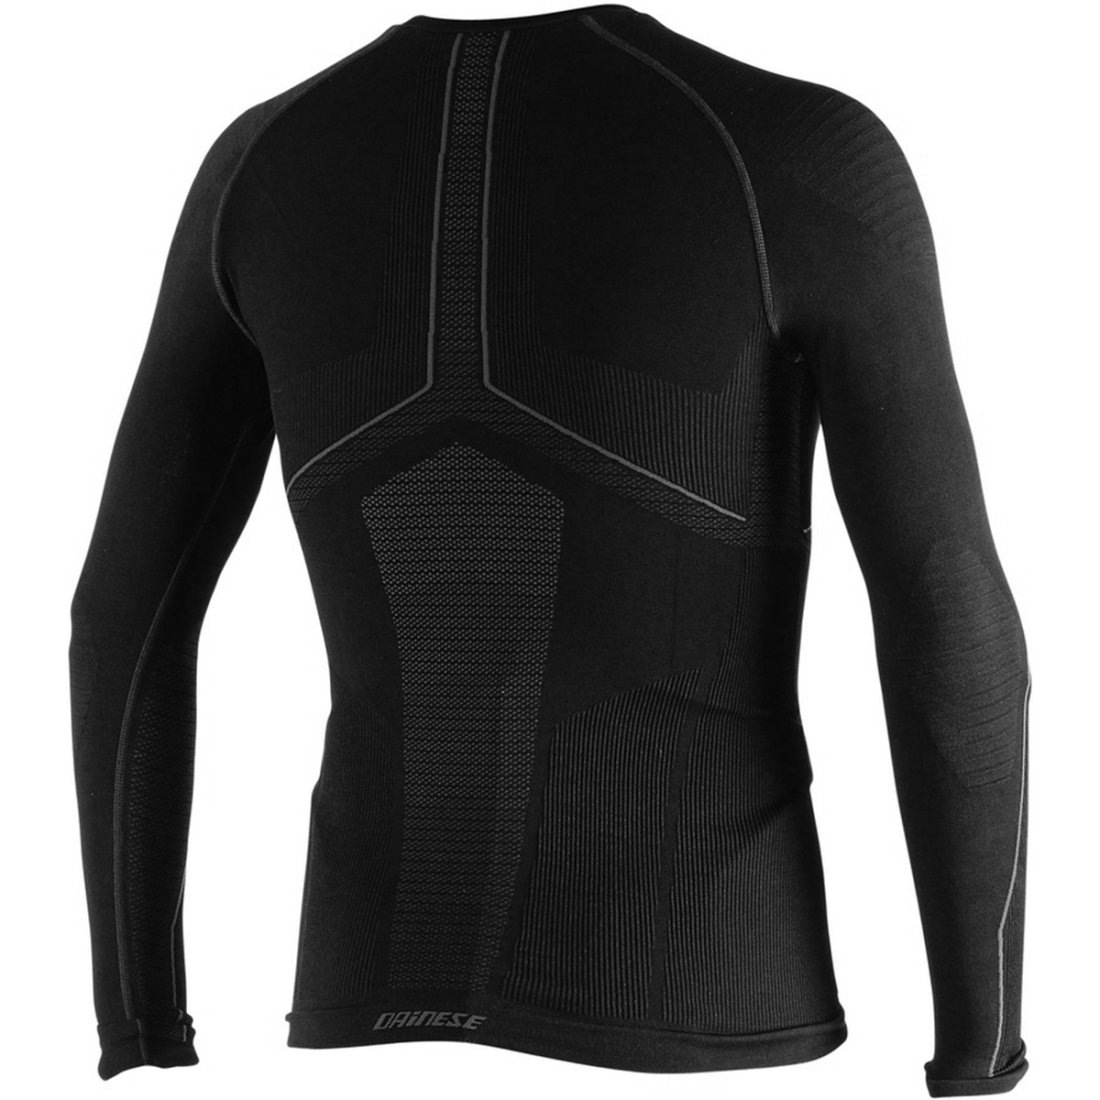 6fa1cb44 DAINESE D-Core Dry LS Black / Anthracite Thermal · Motocard